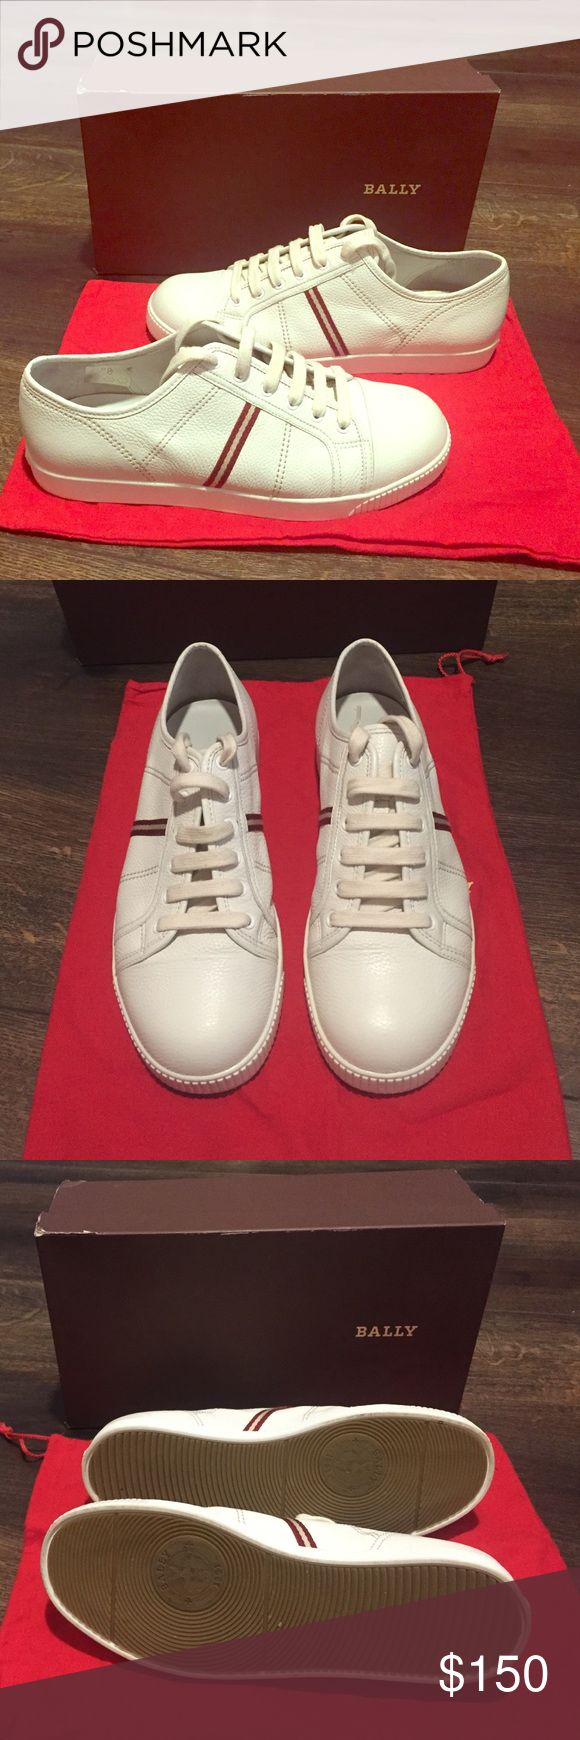 Authentic Bally Men's Shoes Beautiful cream leather men's shoes. Style-Venanzo. Made in Switzerland. Size 9.5 US. Owned by a shoe head. Bally Shoes